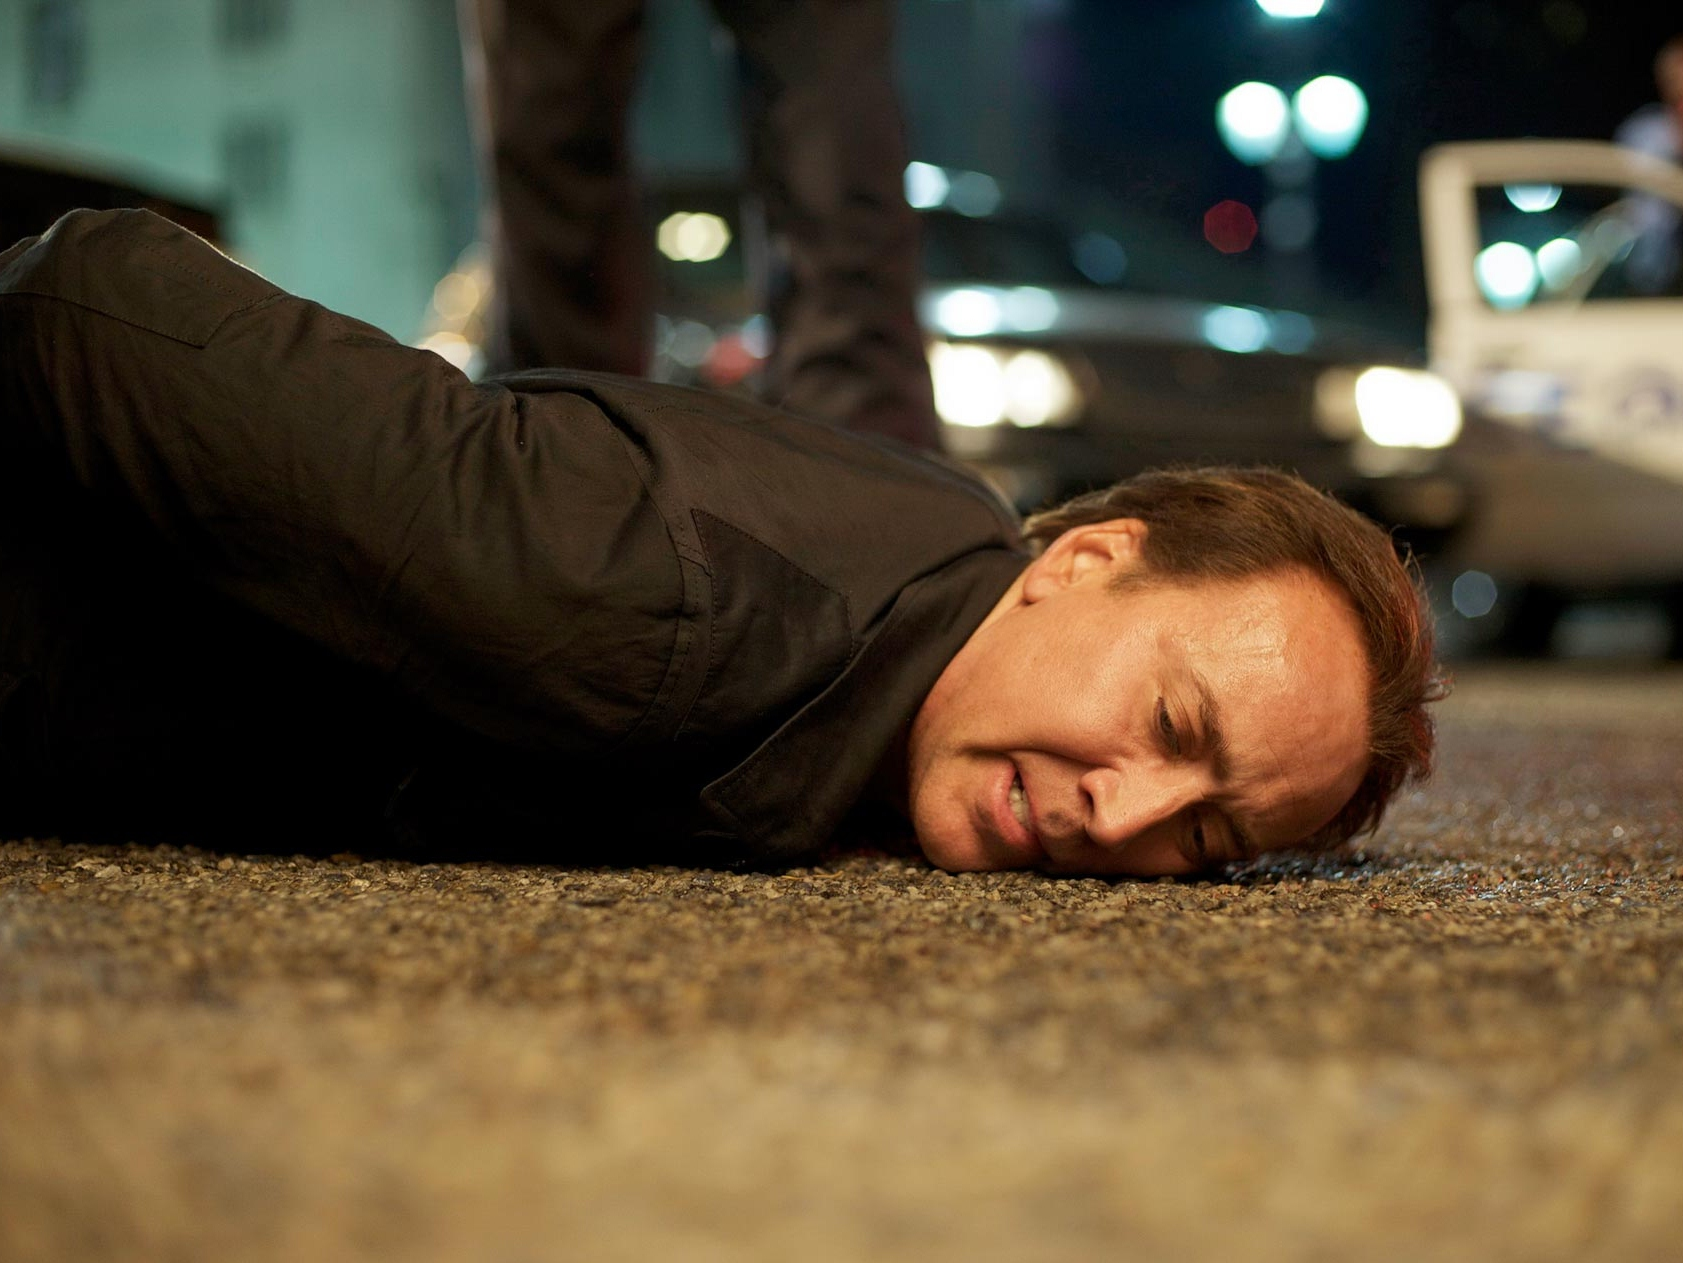 Trailer Talk: Cage is Down, but Not Out, in 'Stolen'